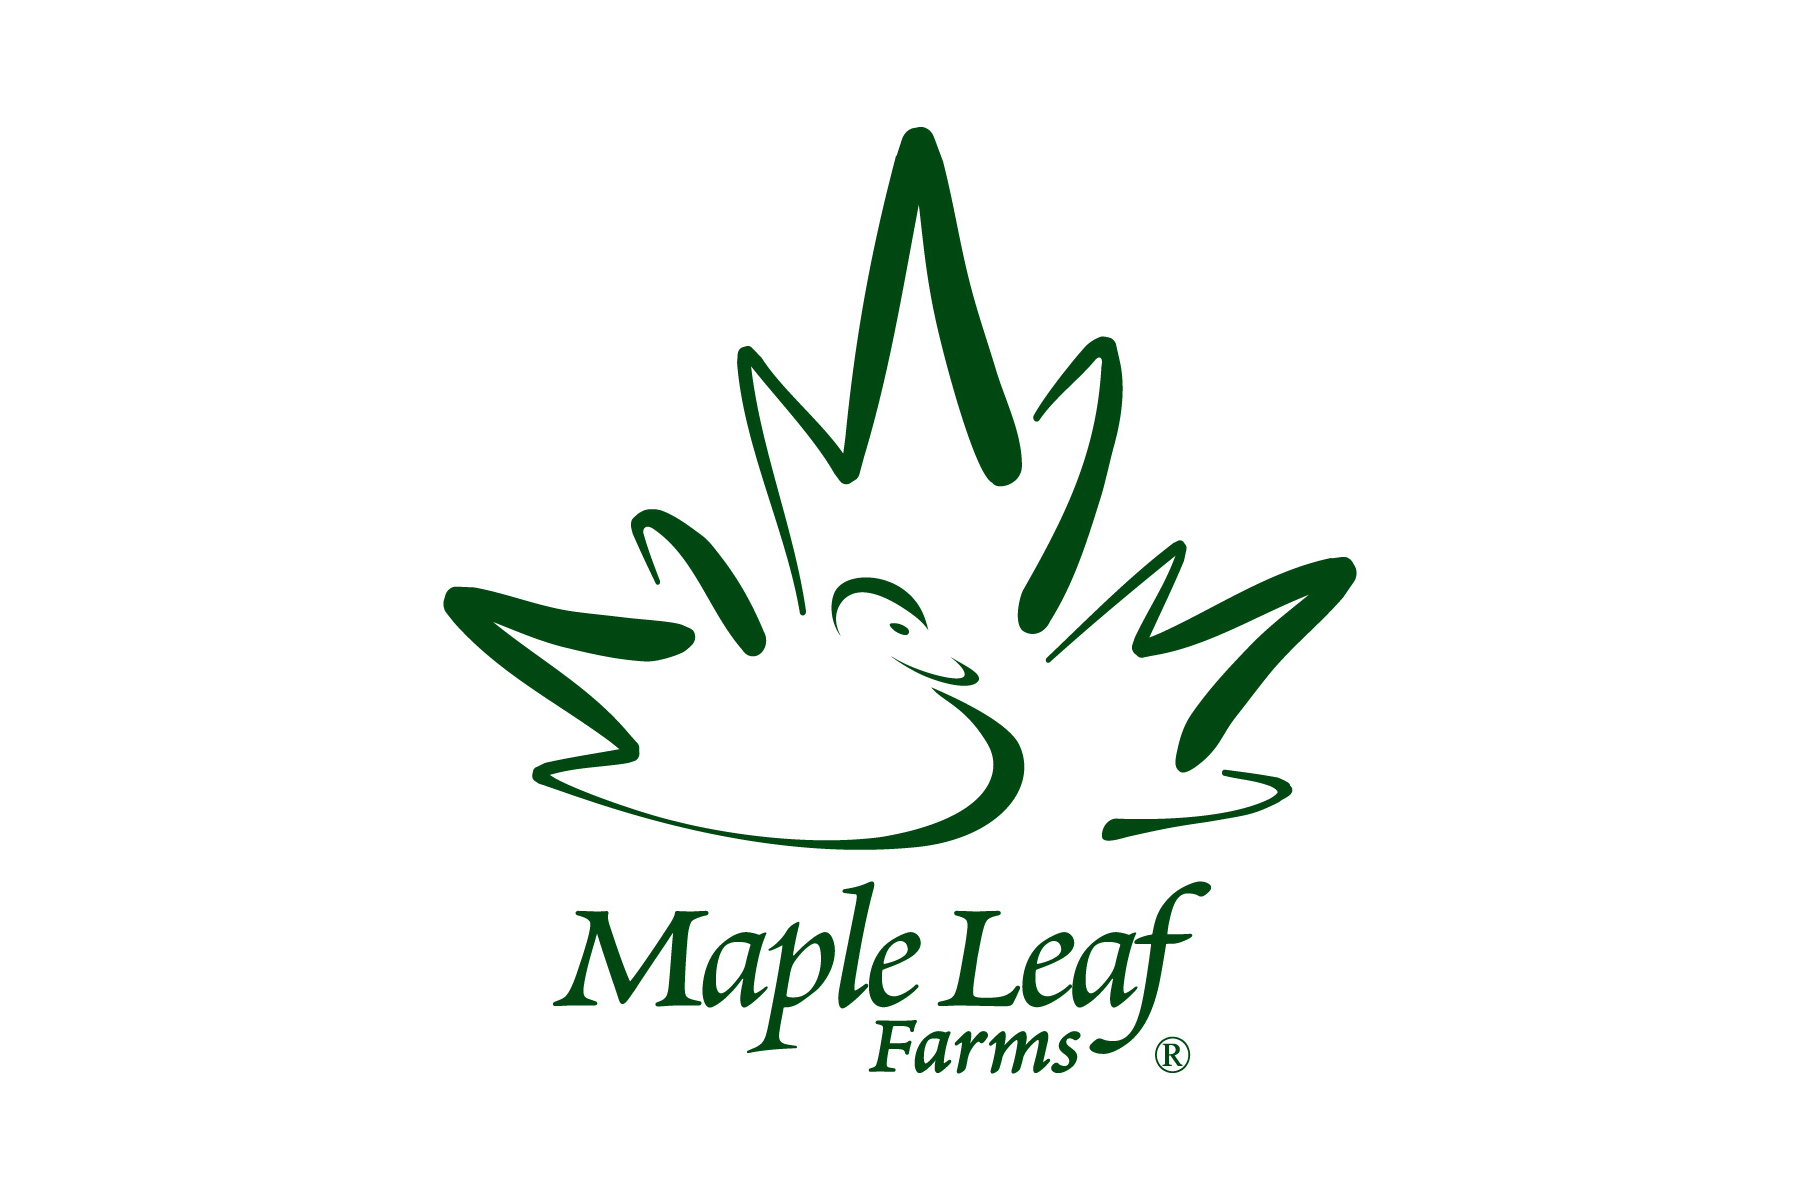 Maple-Leaf-Farms-Duck-Green_Logo